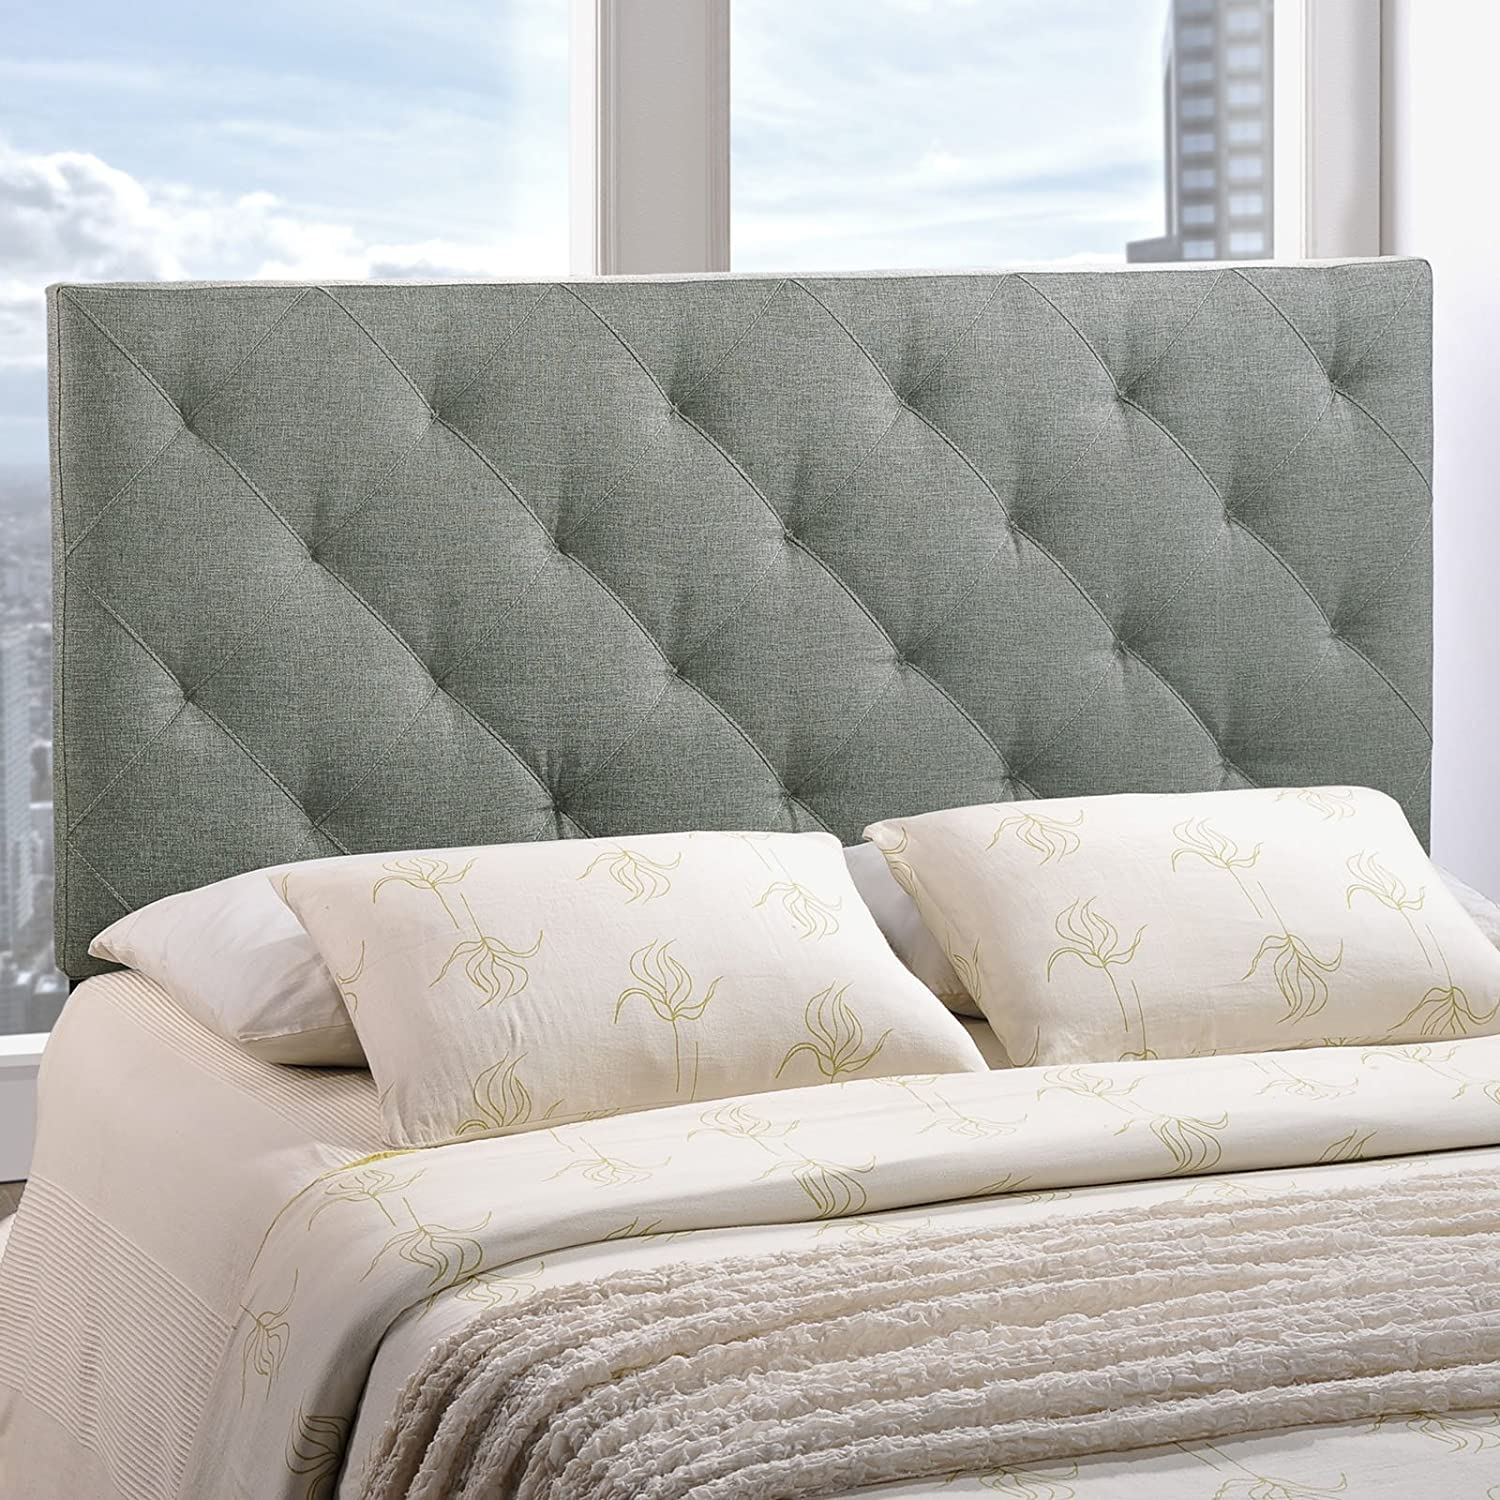 amazoncom  modway theodore upholstered fabric tufted headboard in grayqueen size . amazoncom  modway theodore upholstered fabric tufted headboard